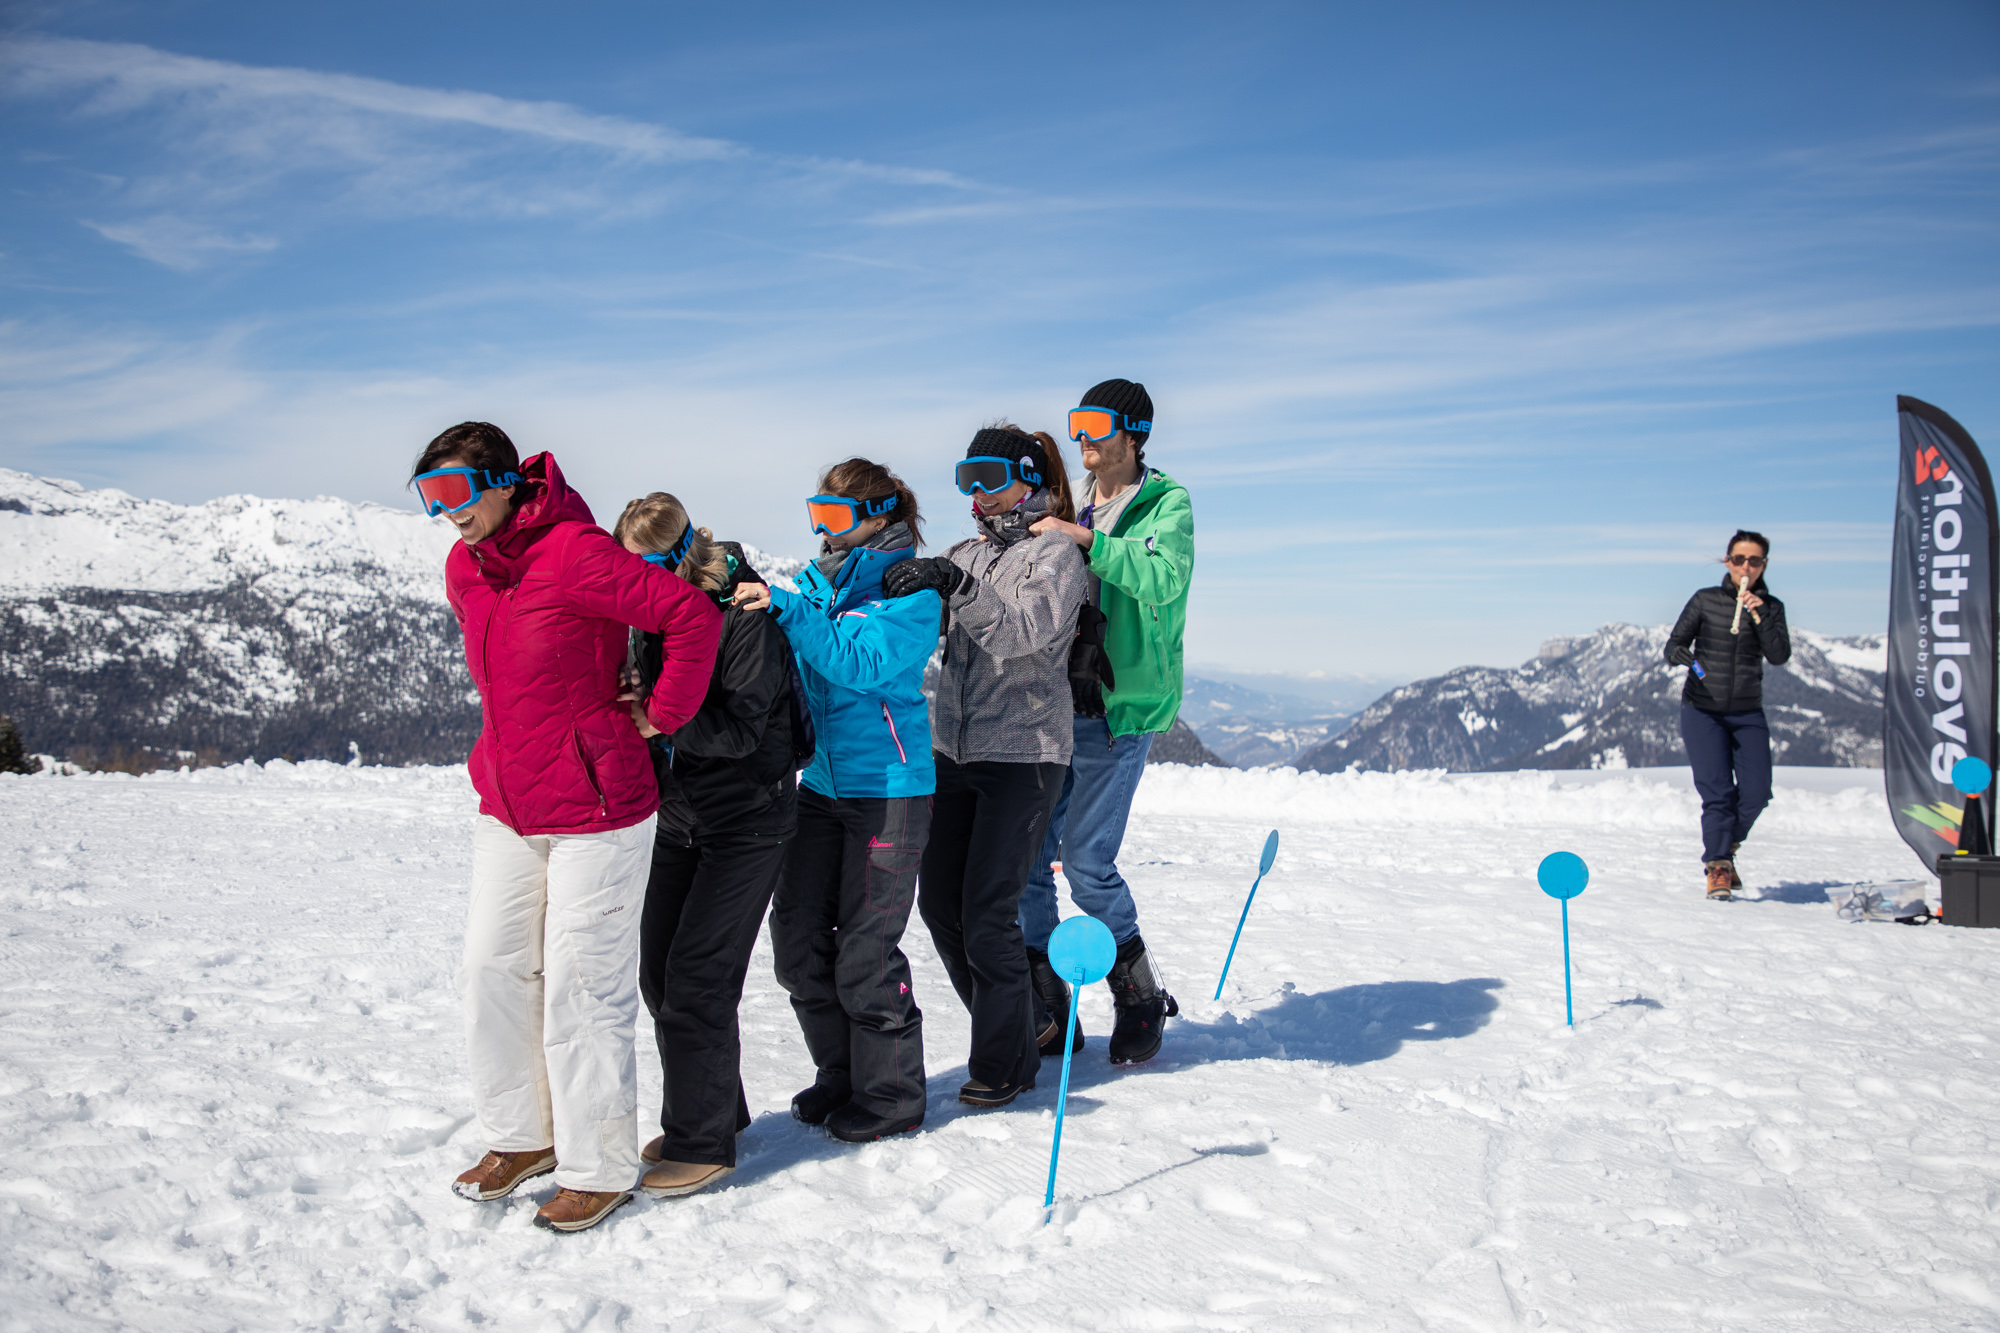 Break_The_Ice_LaClusaz_2019_web-6844.jpg